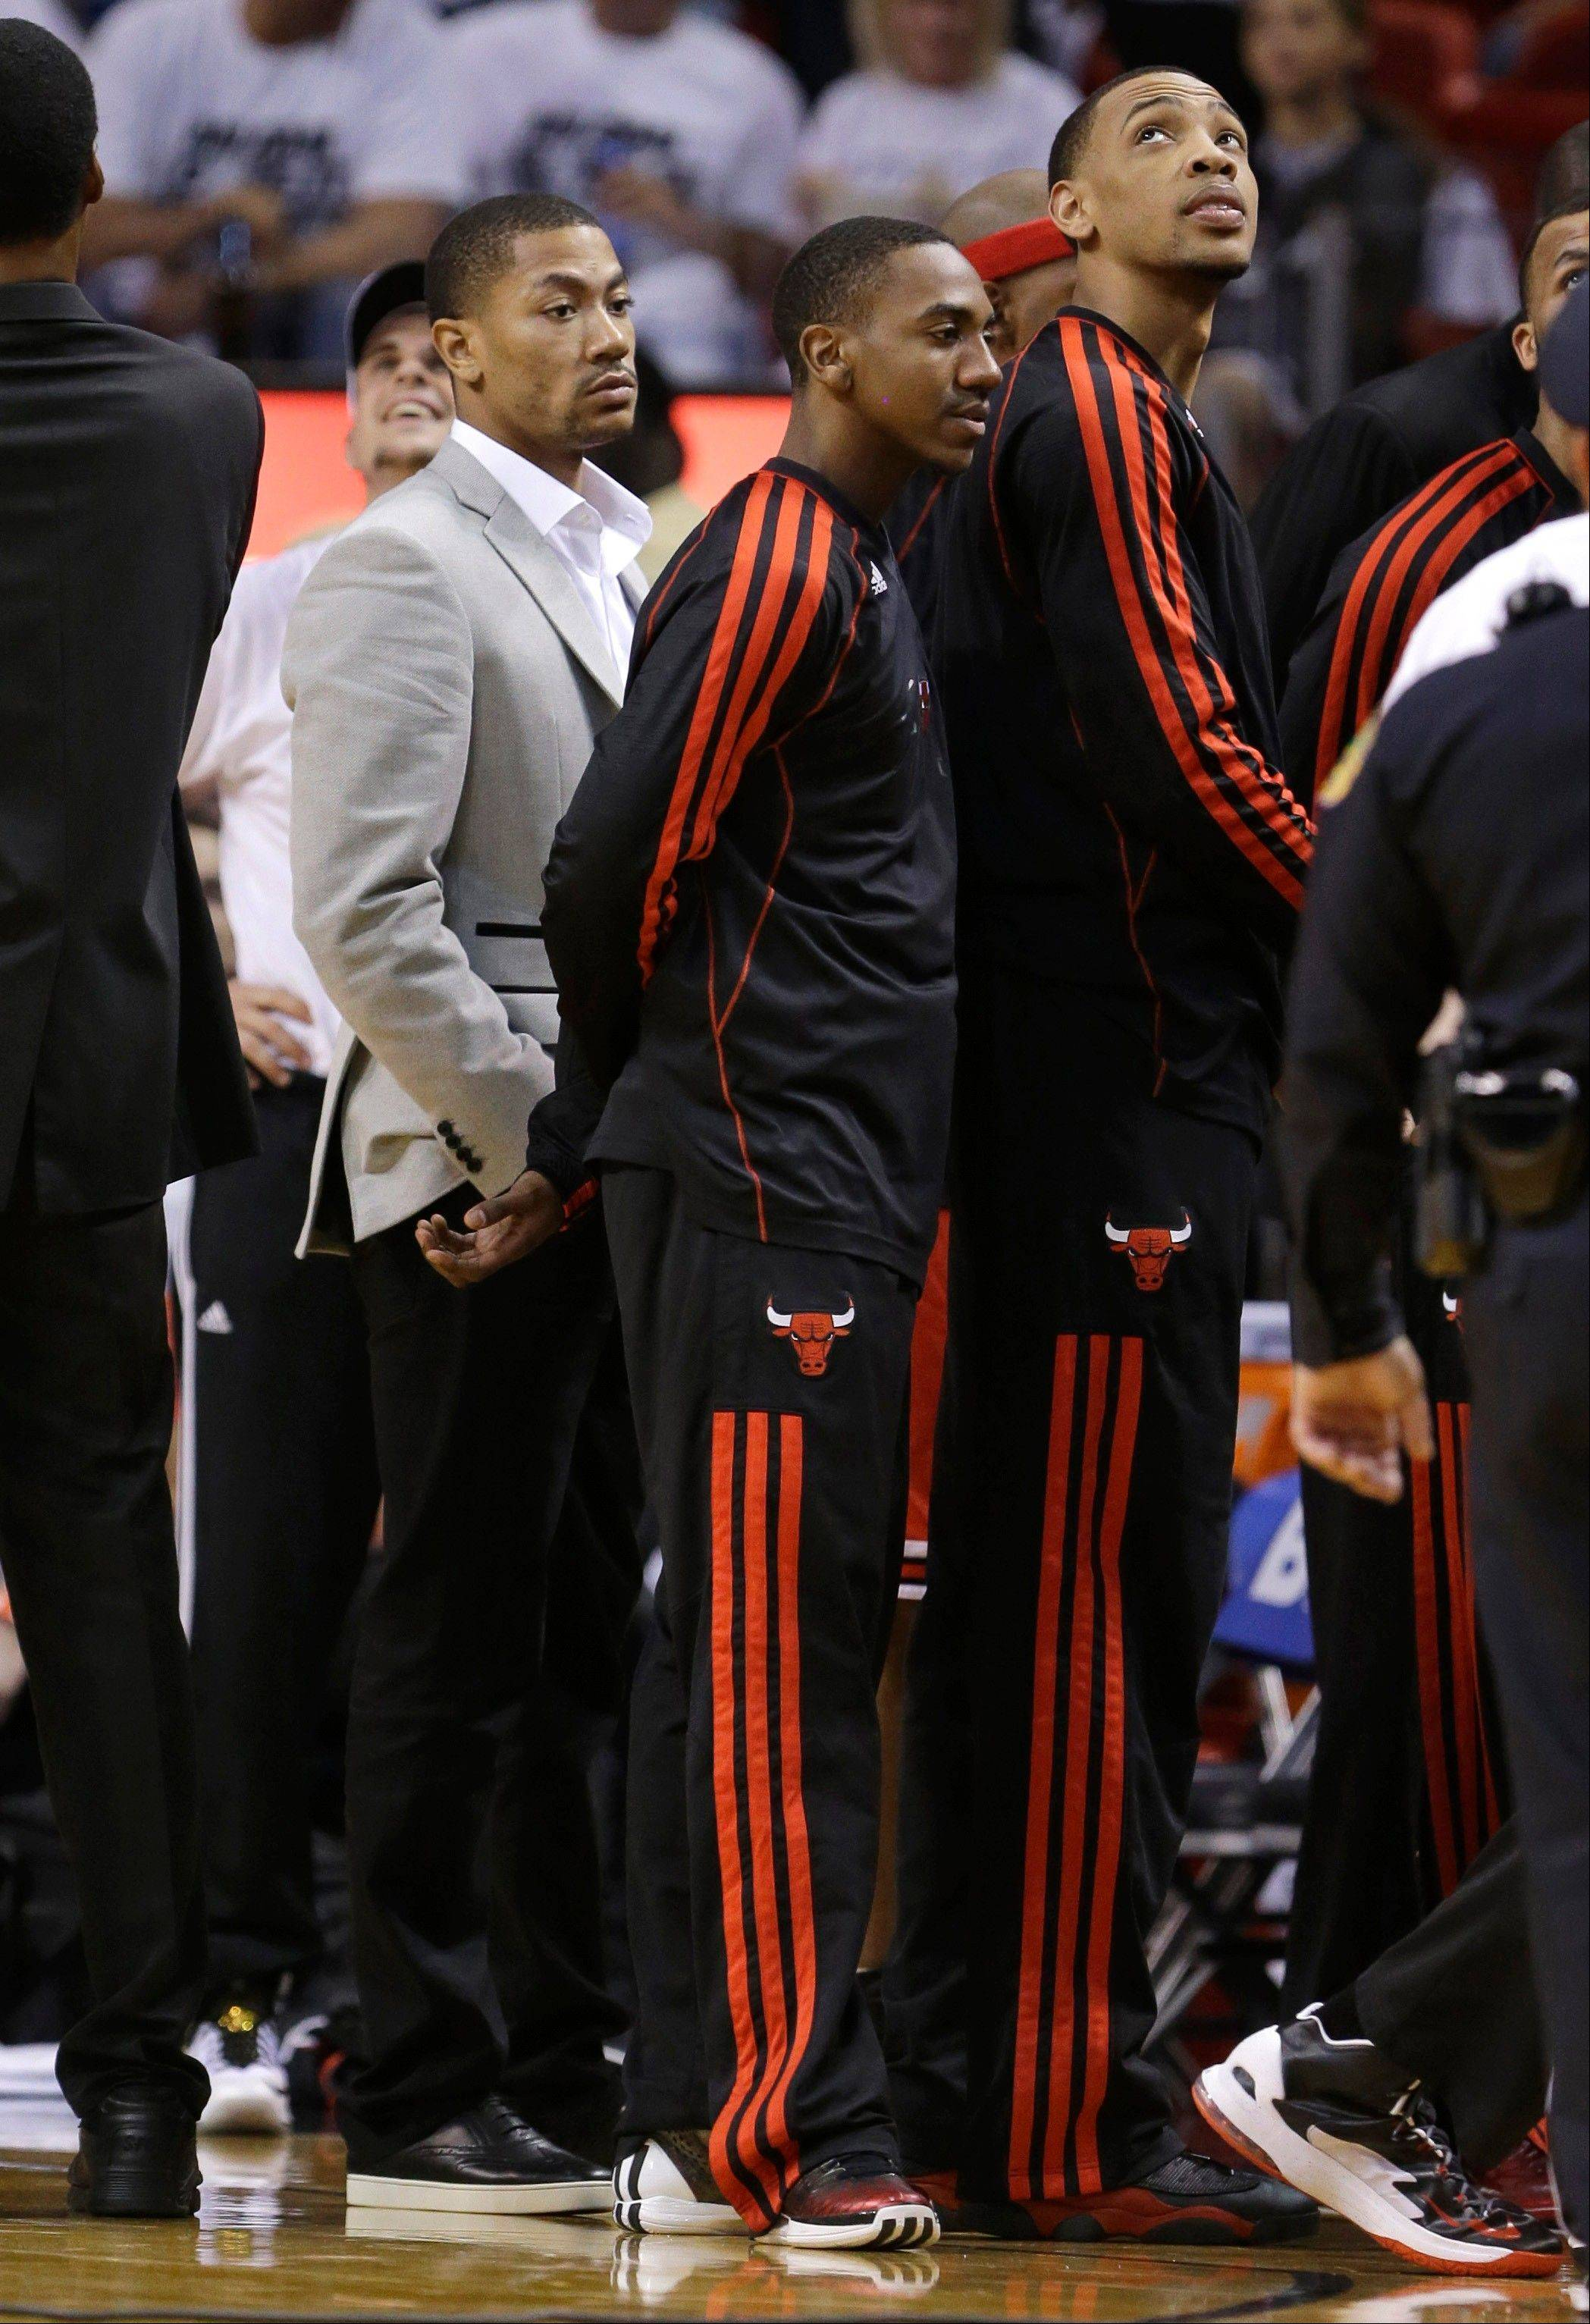 Derrick Rose, left, stands with his Bulls teammates during the second half of Game 5 of the Eastern Conference semifinals Wednesday. The Heat beat the Bulls 94-91 to win the series 4-1.